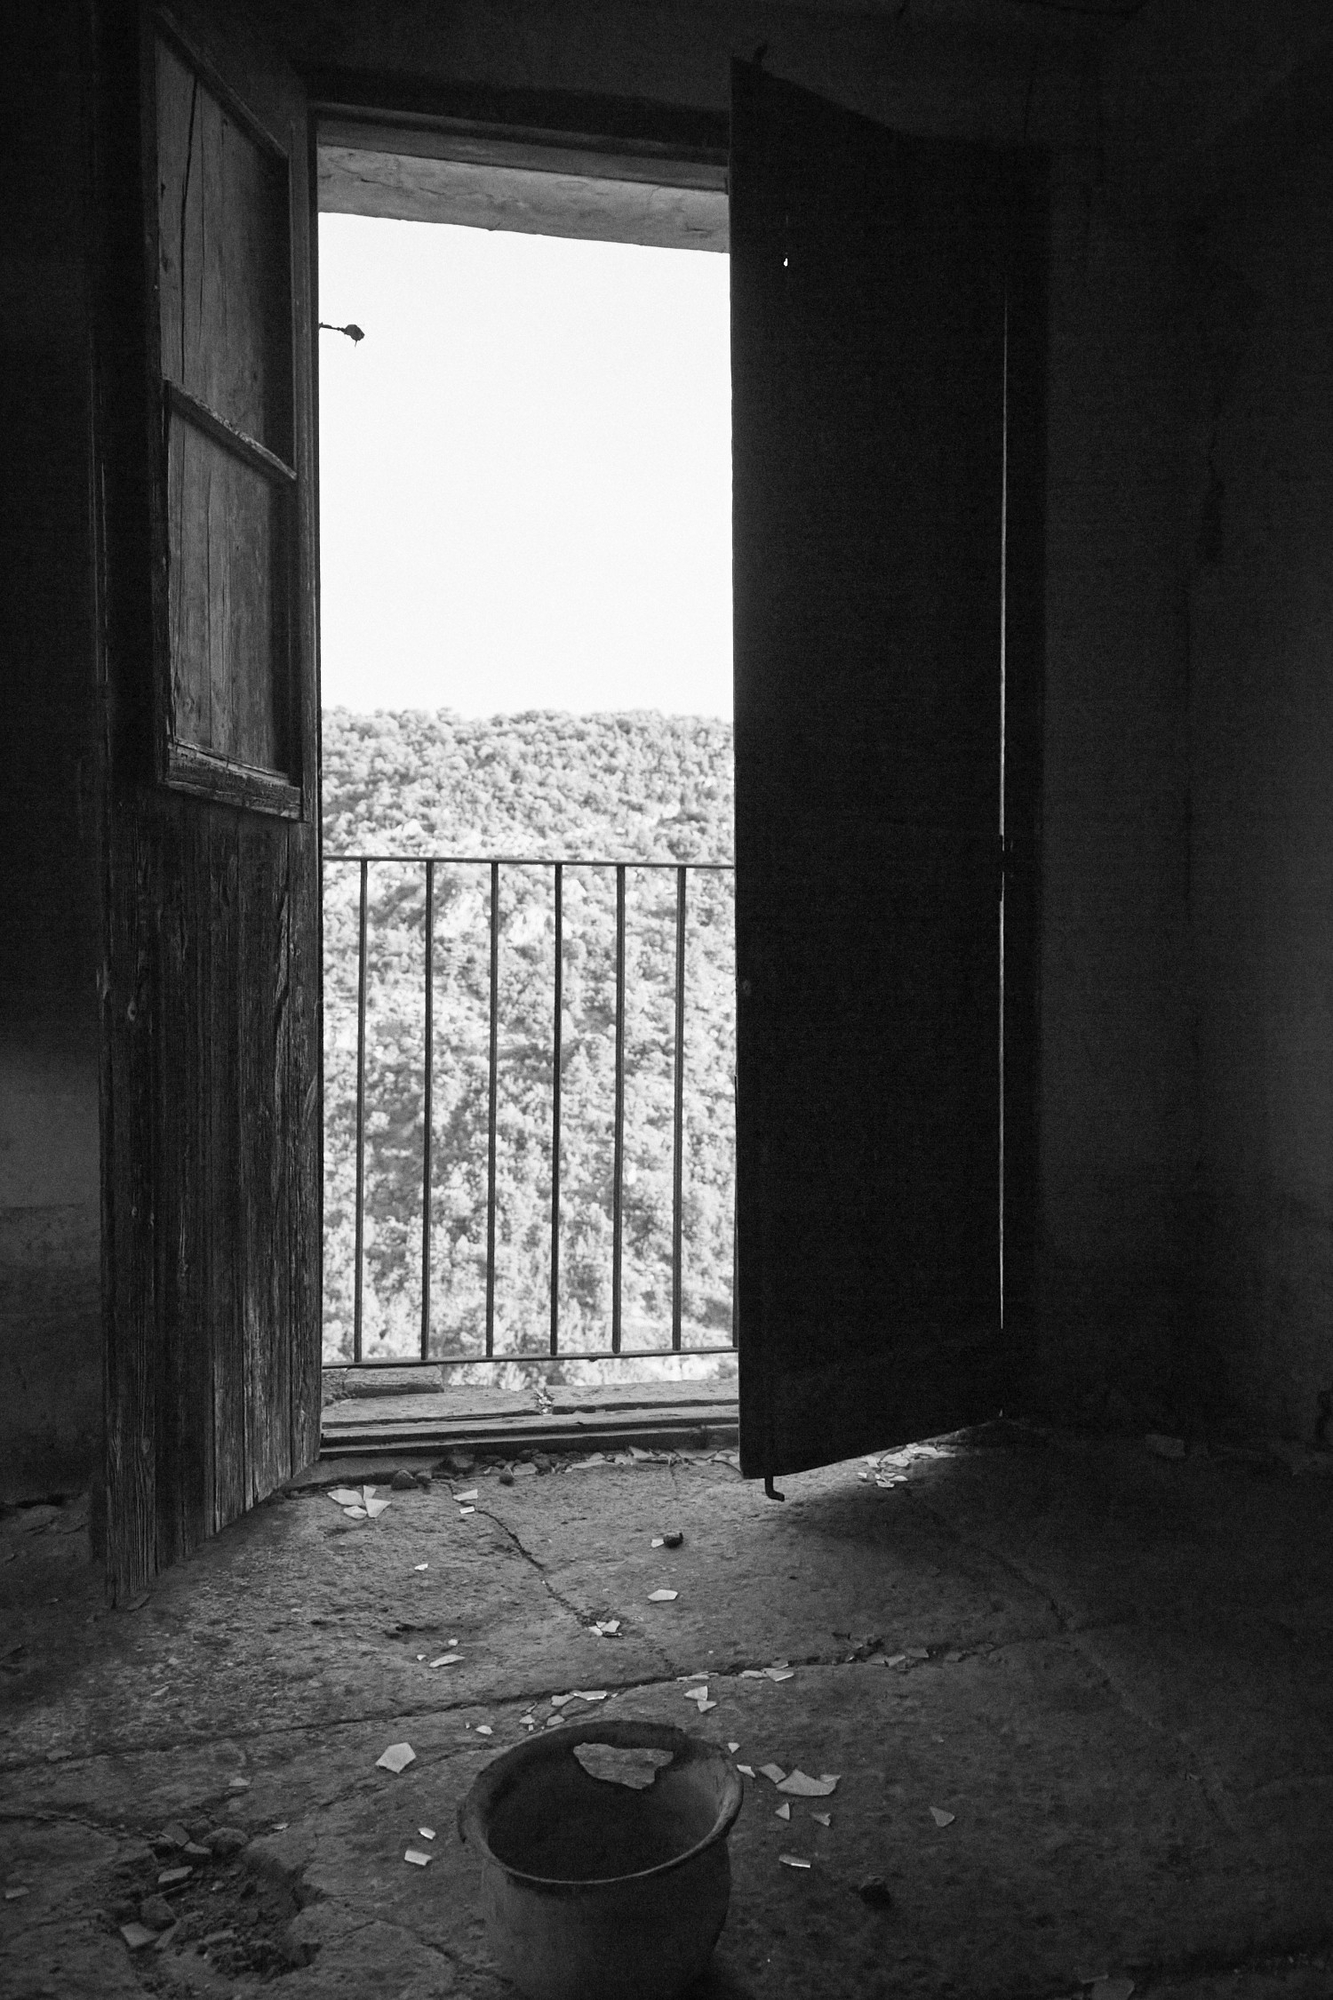 A room with an open window of an abandon house. There is a bucket with a hole and broken glass on the floor.